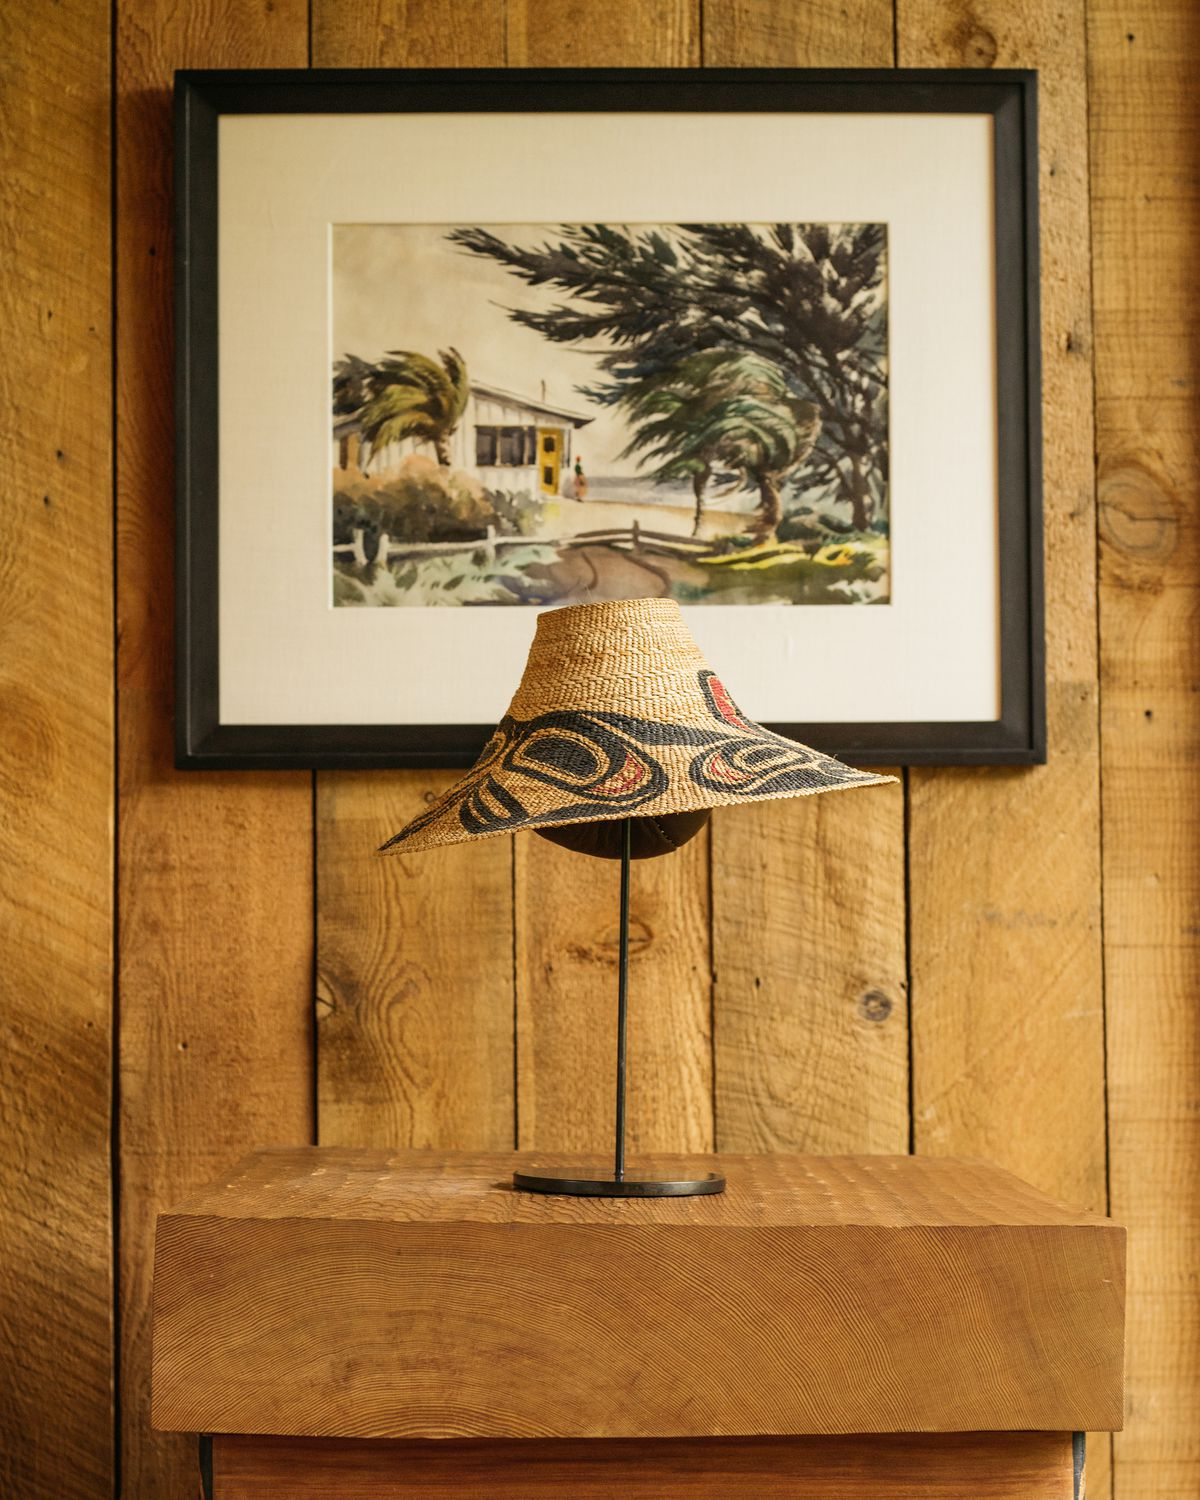 A desk with a hat stand and hat.  A framed work of art hangs over the desk.  The wall is made of wood.